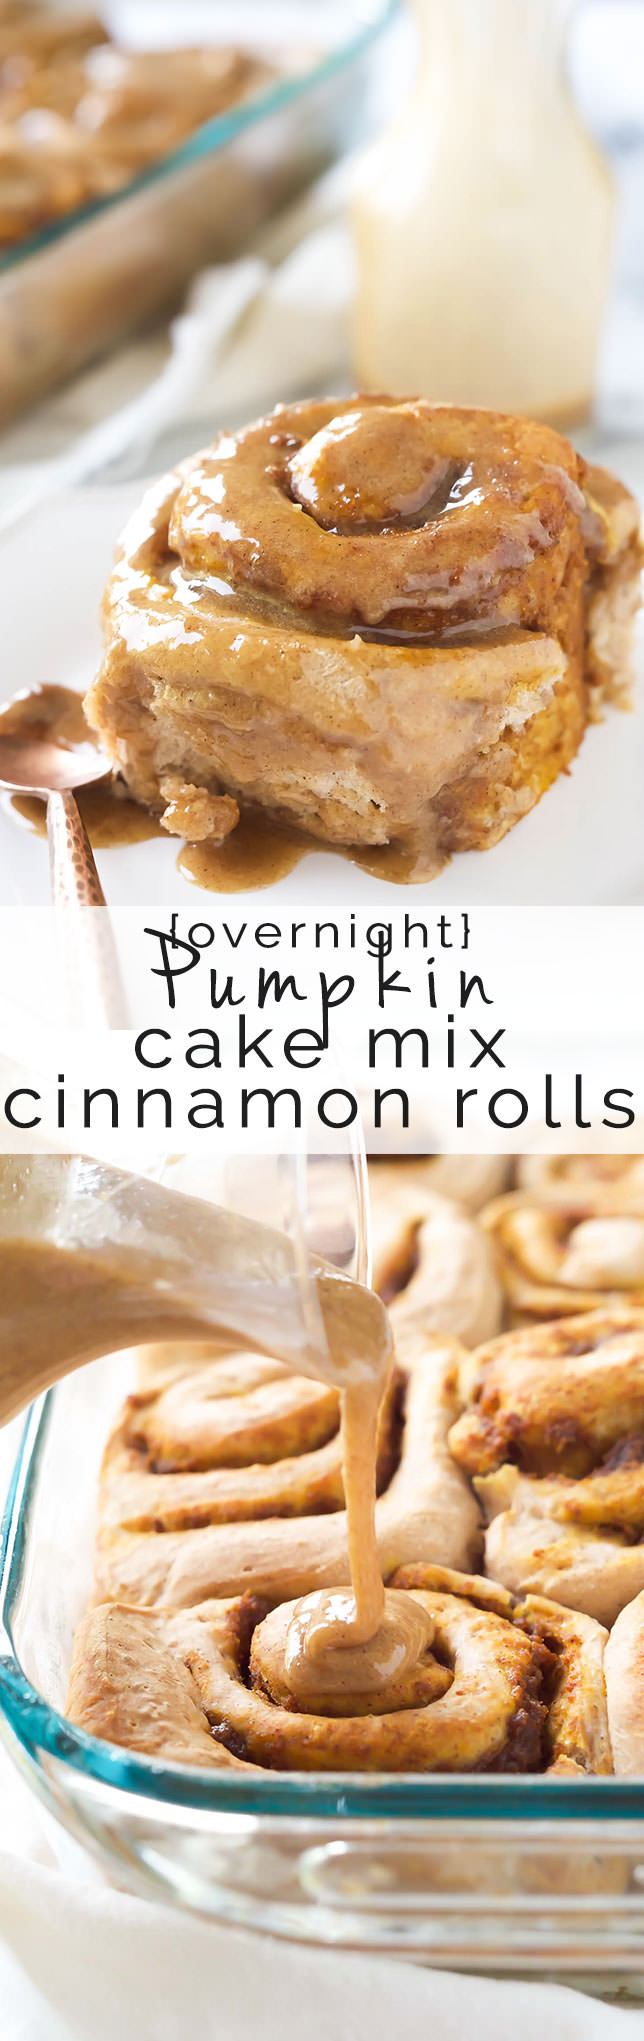 Easy No Yeast Pumpkin Cake Mix Cinnamon Rolls, Overnight, White, Gluten Free, Families, Christmas, Baking, Parties